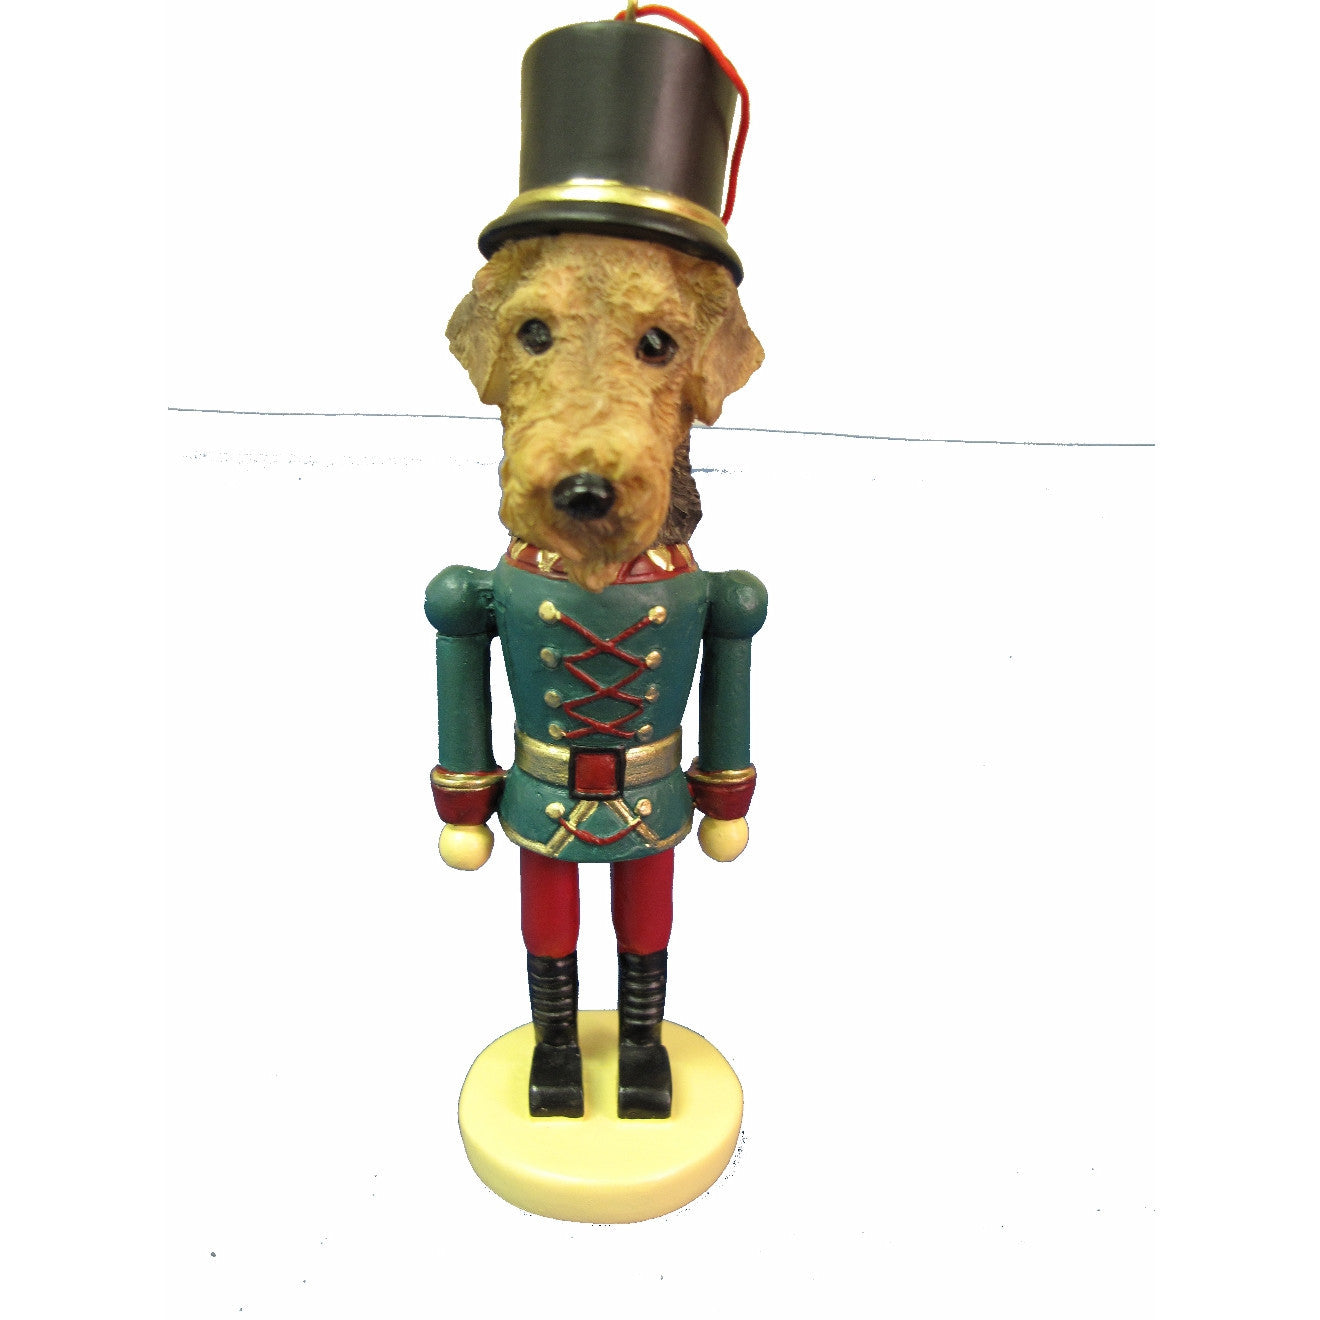 Airedale Terrier Dog Toy Soldier Nutcracker Christmas Ornament